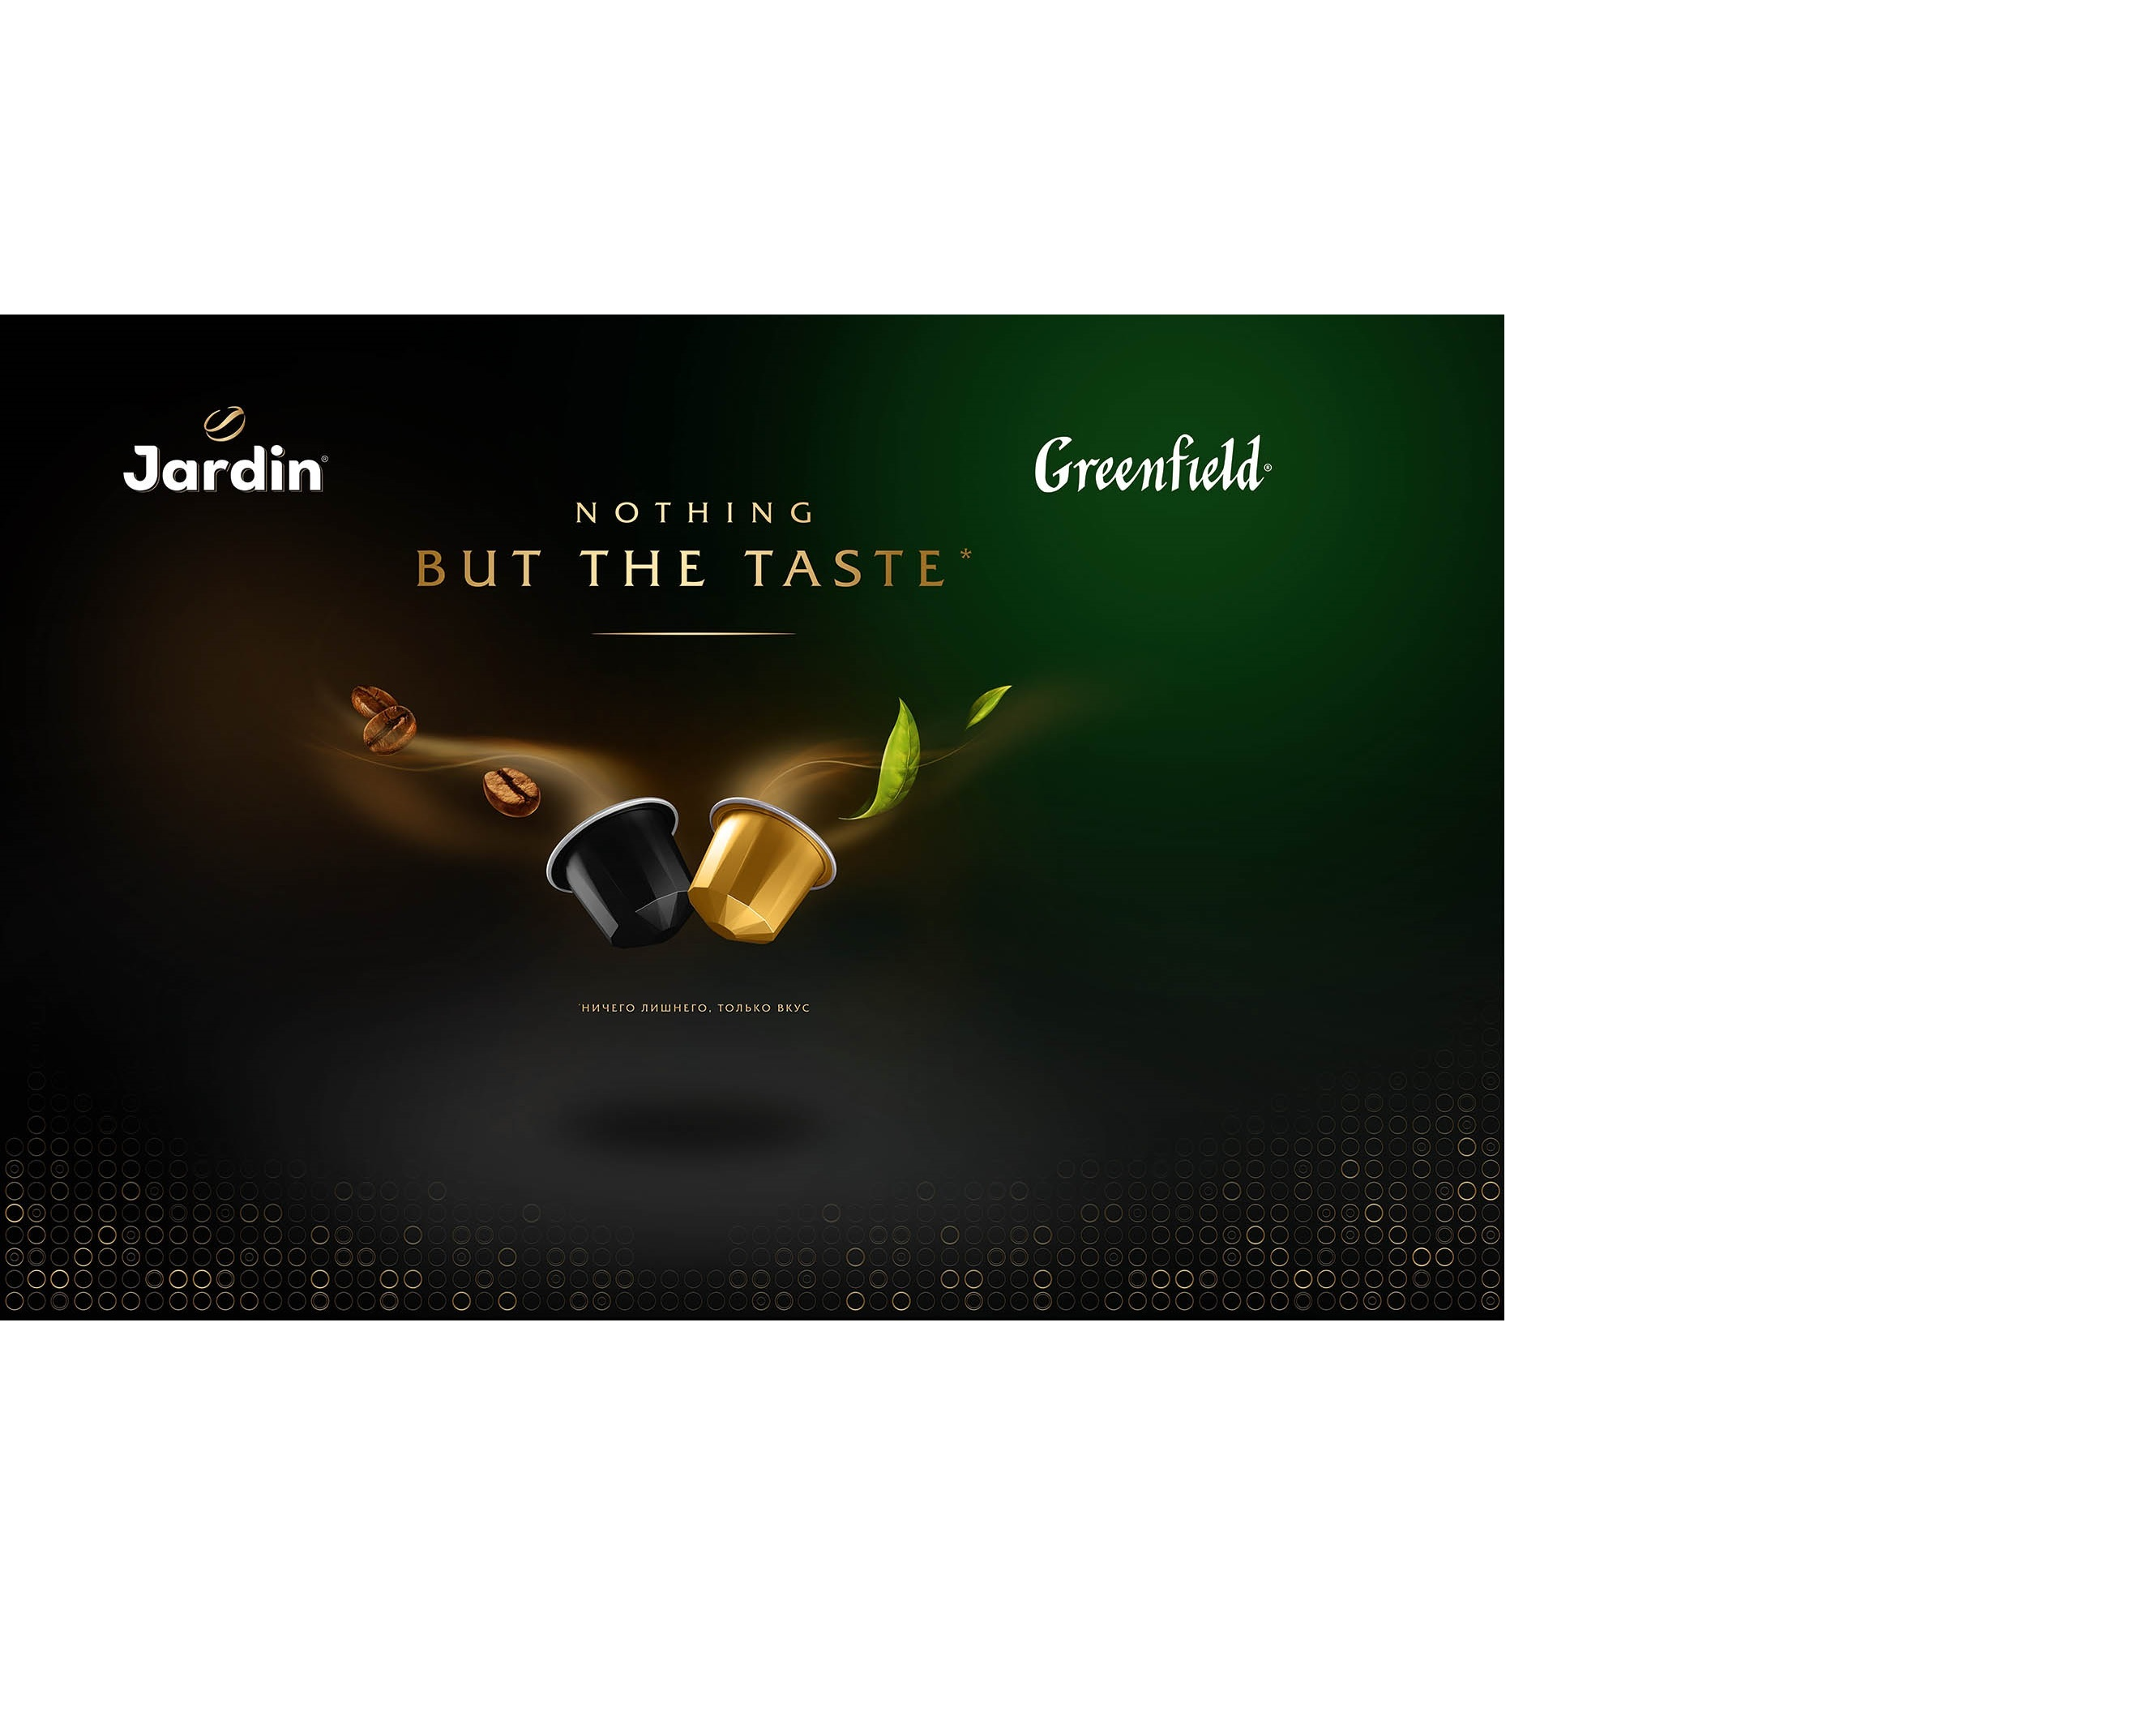 The Orimi Trade Group of Companies Started Producing Tea and Coffee Capsules